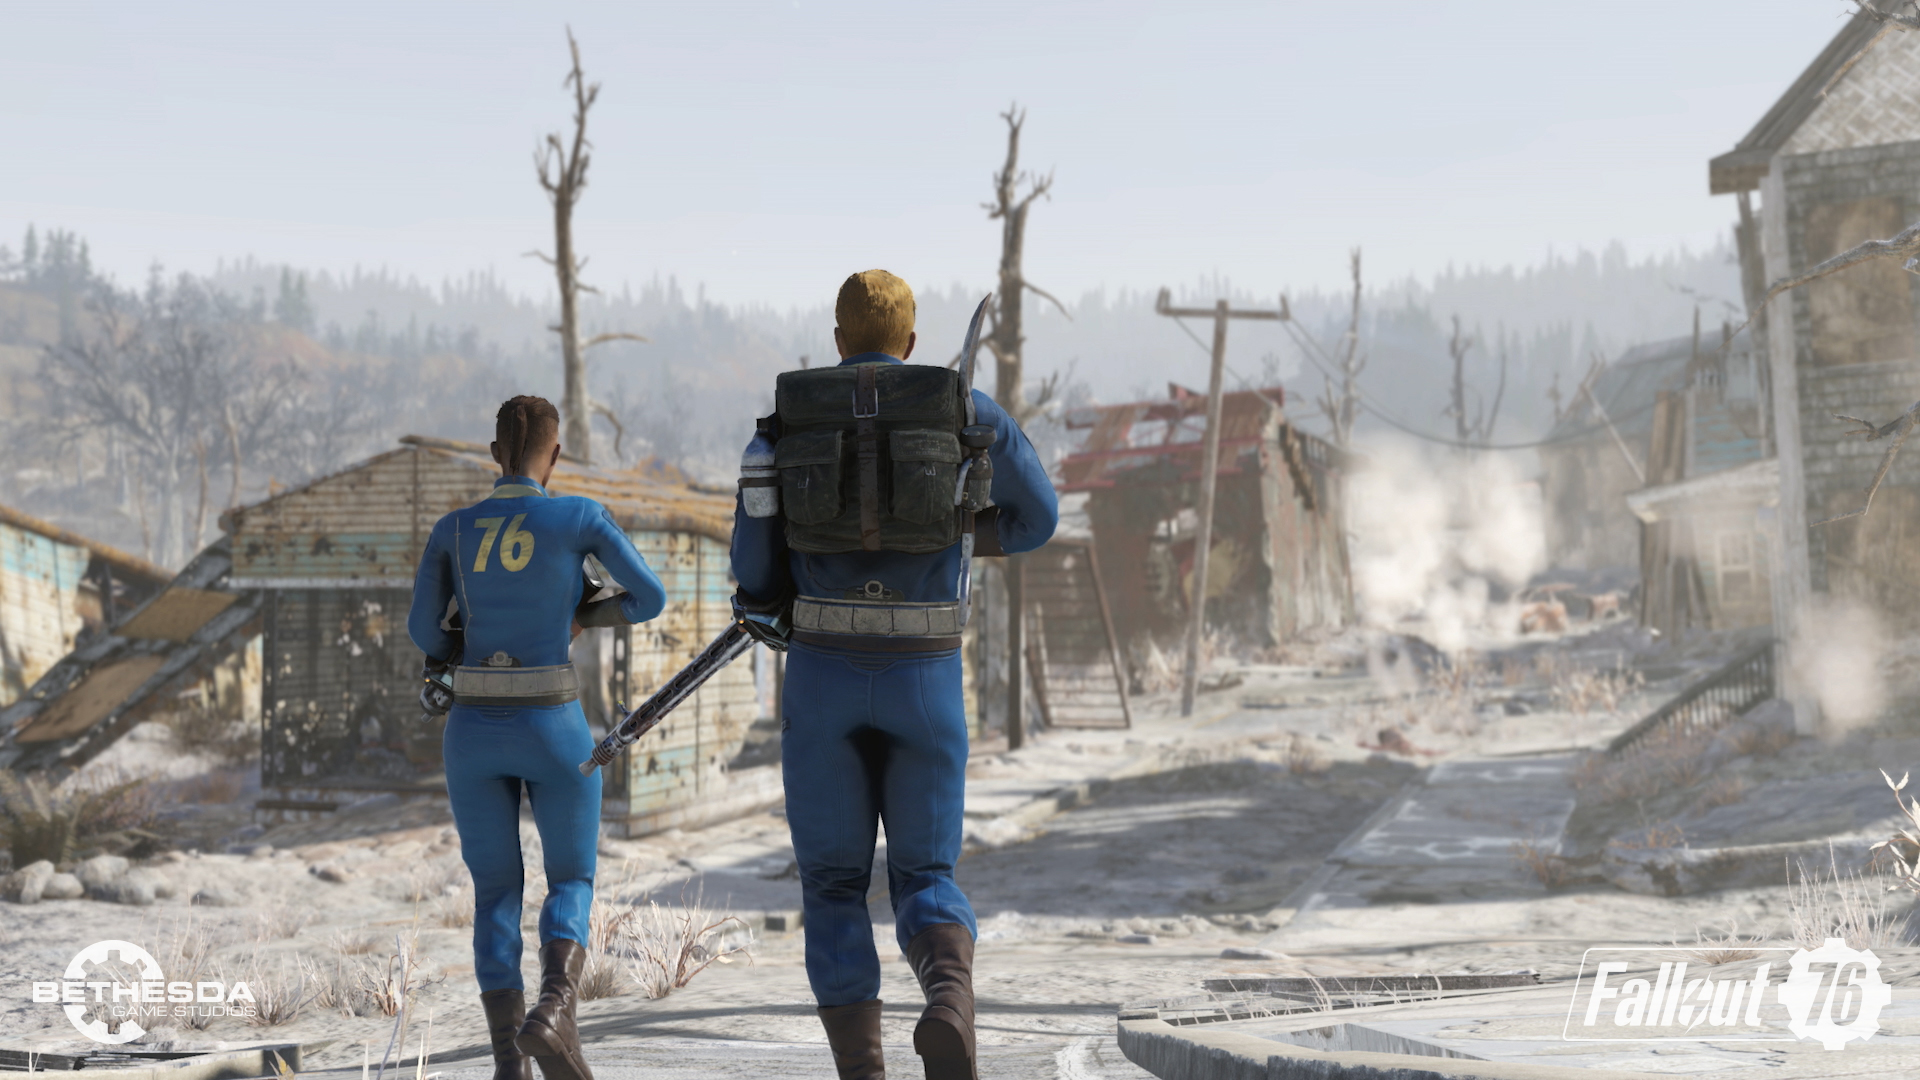 Fallout 76 is free on Steam for those who own the PC version, but you have to claim it quickly